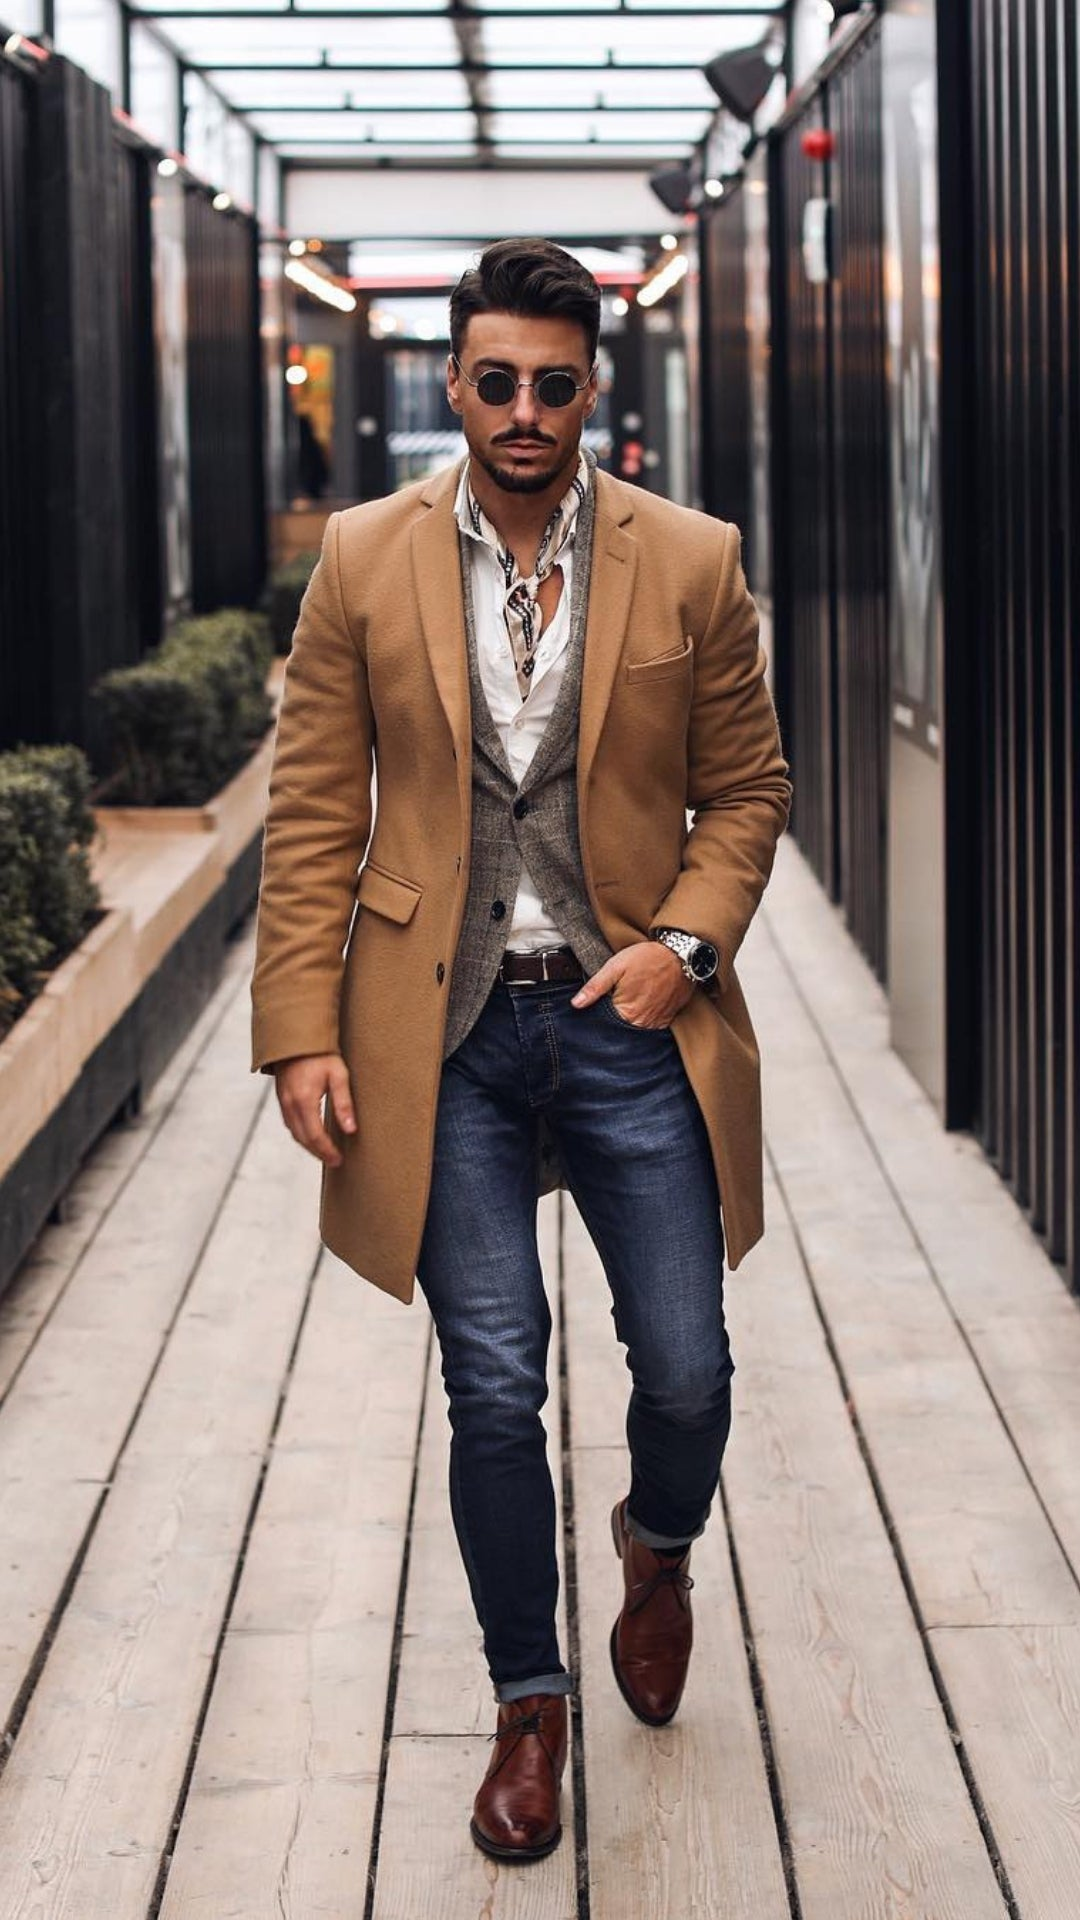 5 Dapper Winter Outfits For Men #winterfashion #fallfashion #mensfashion #streetstyle